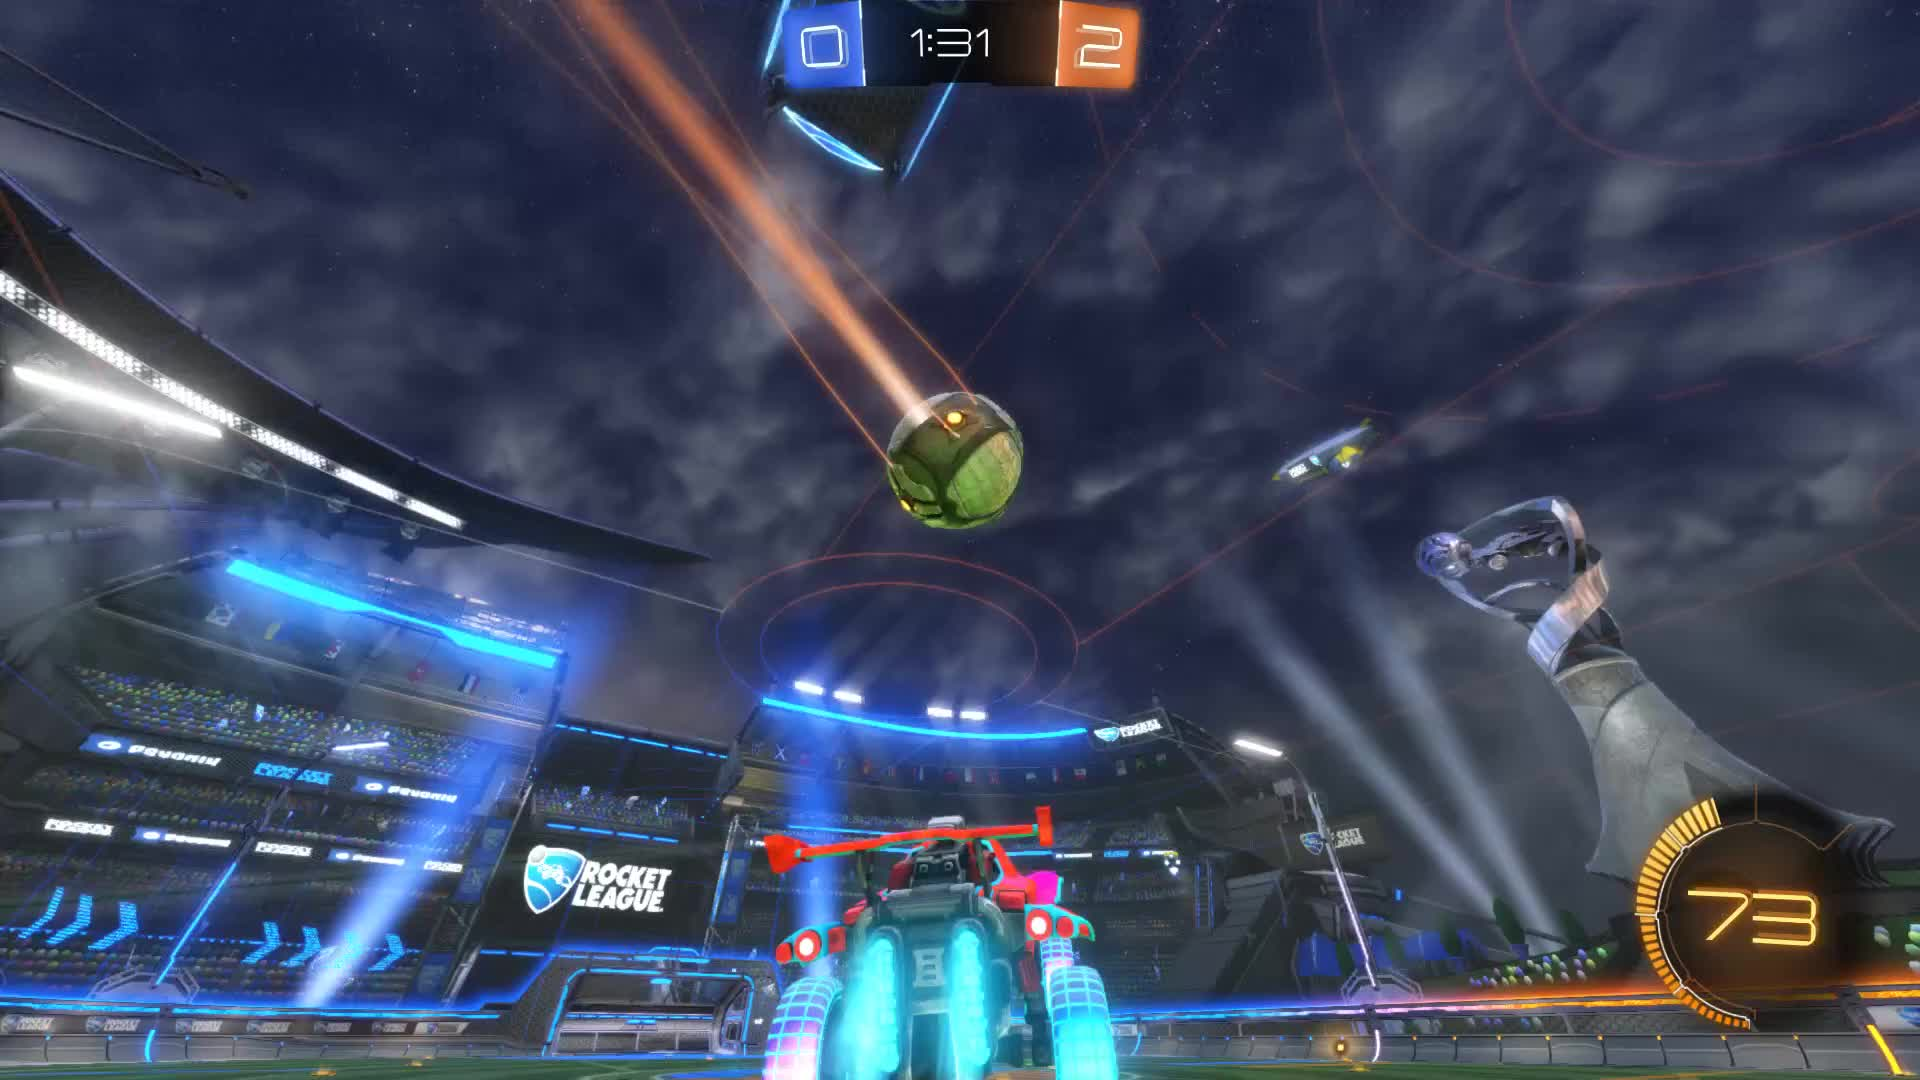 Assist, Gif Your Game, GifYourGame, Rocket League, RocketLeague, Traceur YT, Assist 3: Traceur YT GIFs